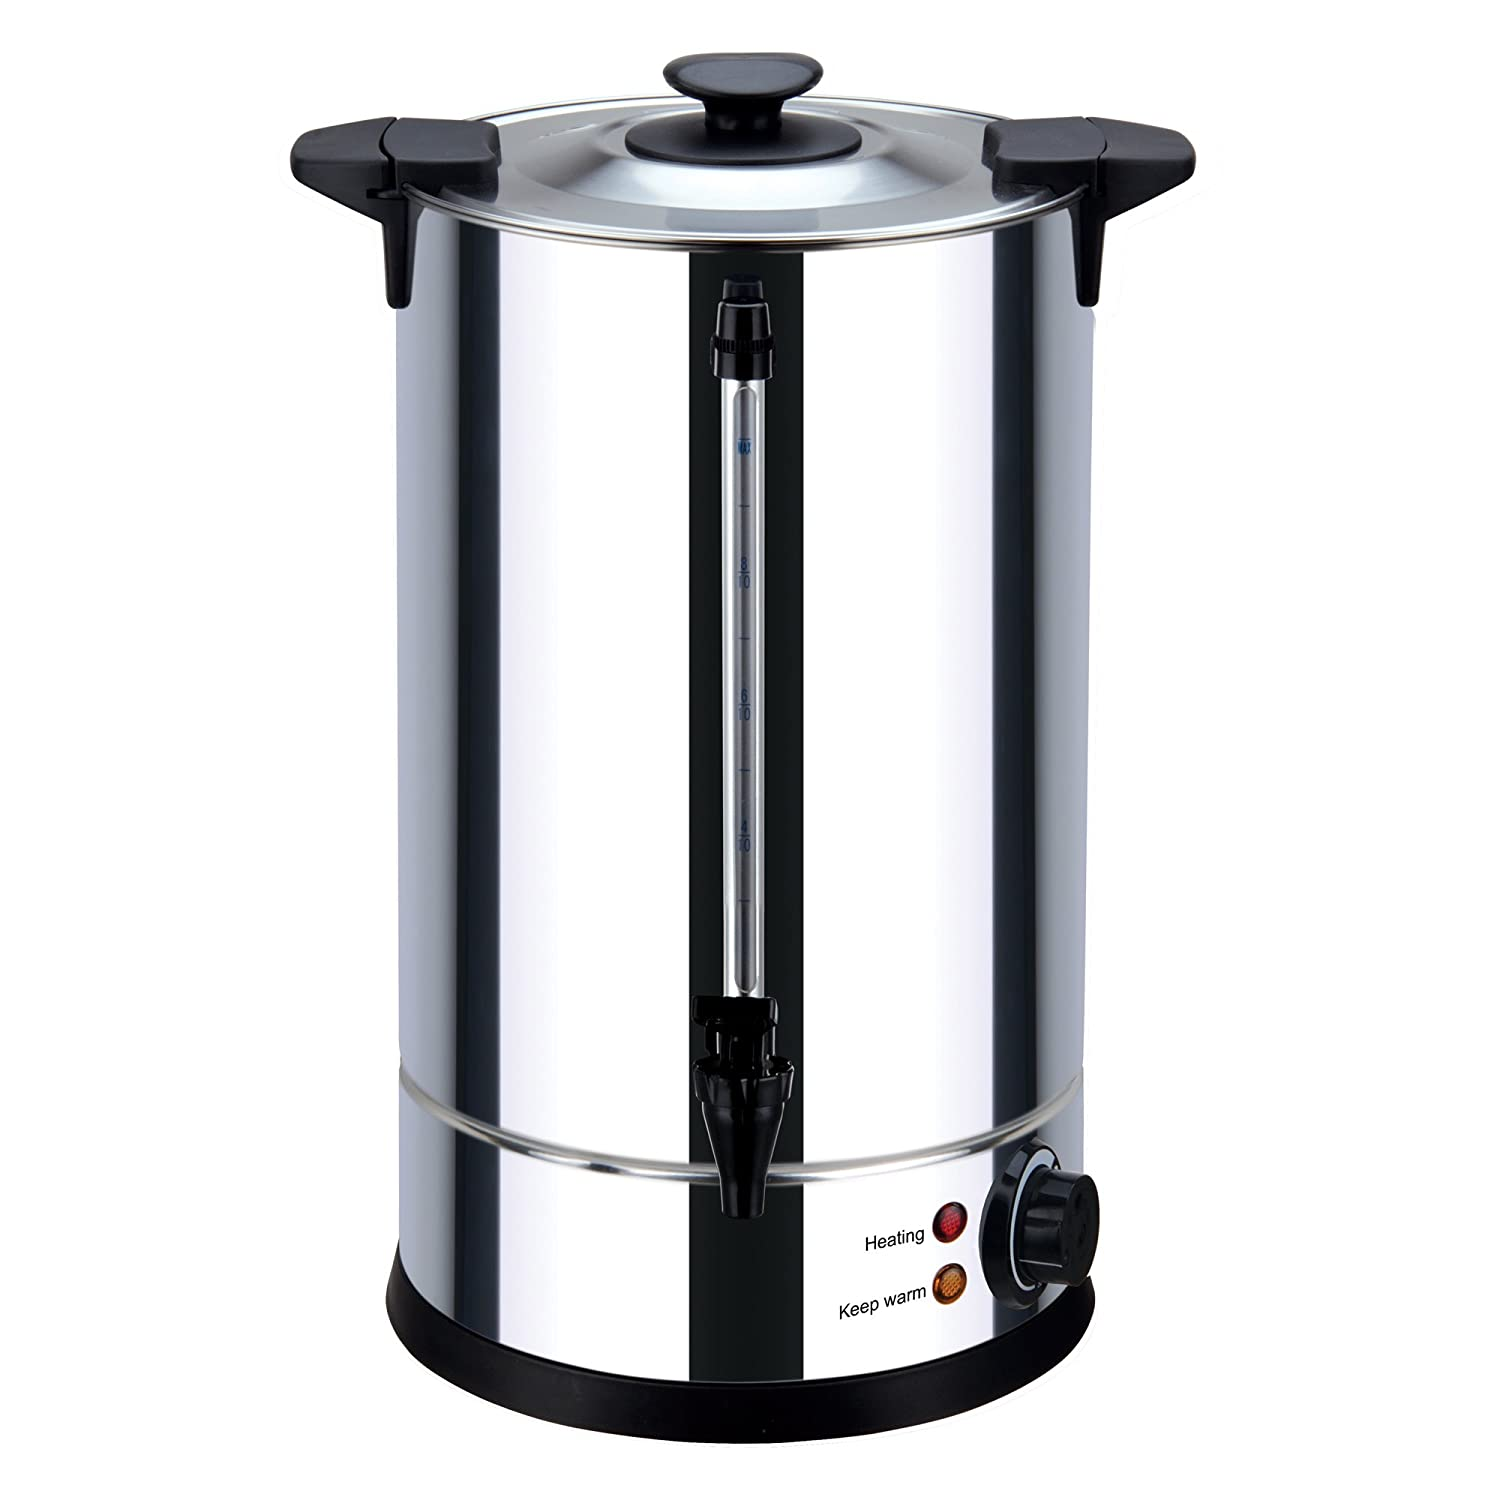 Igenix IG4016 Catering Tea Urn and Hot Water Dispenser, 2250 W - 16 L, Stainless Steel